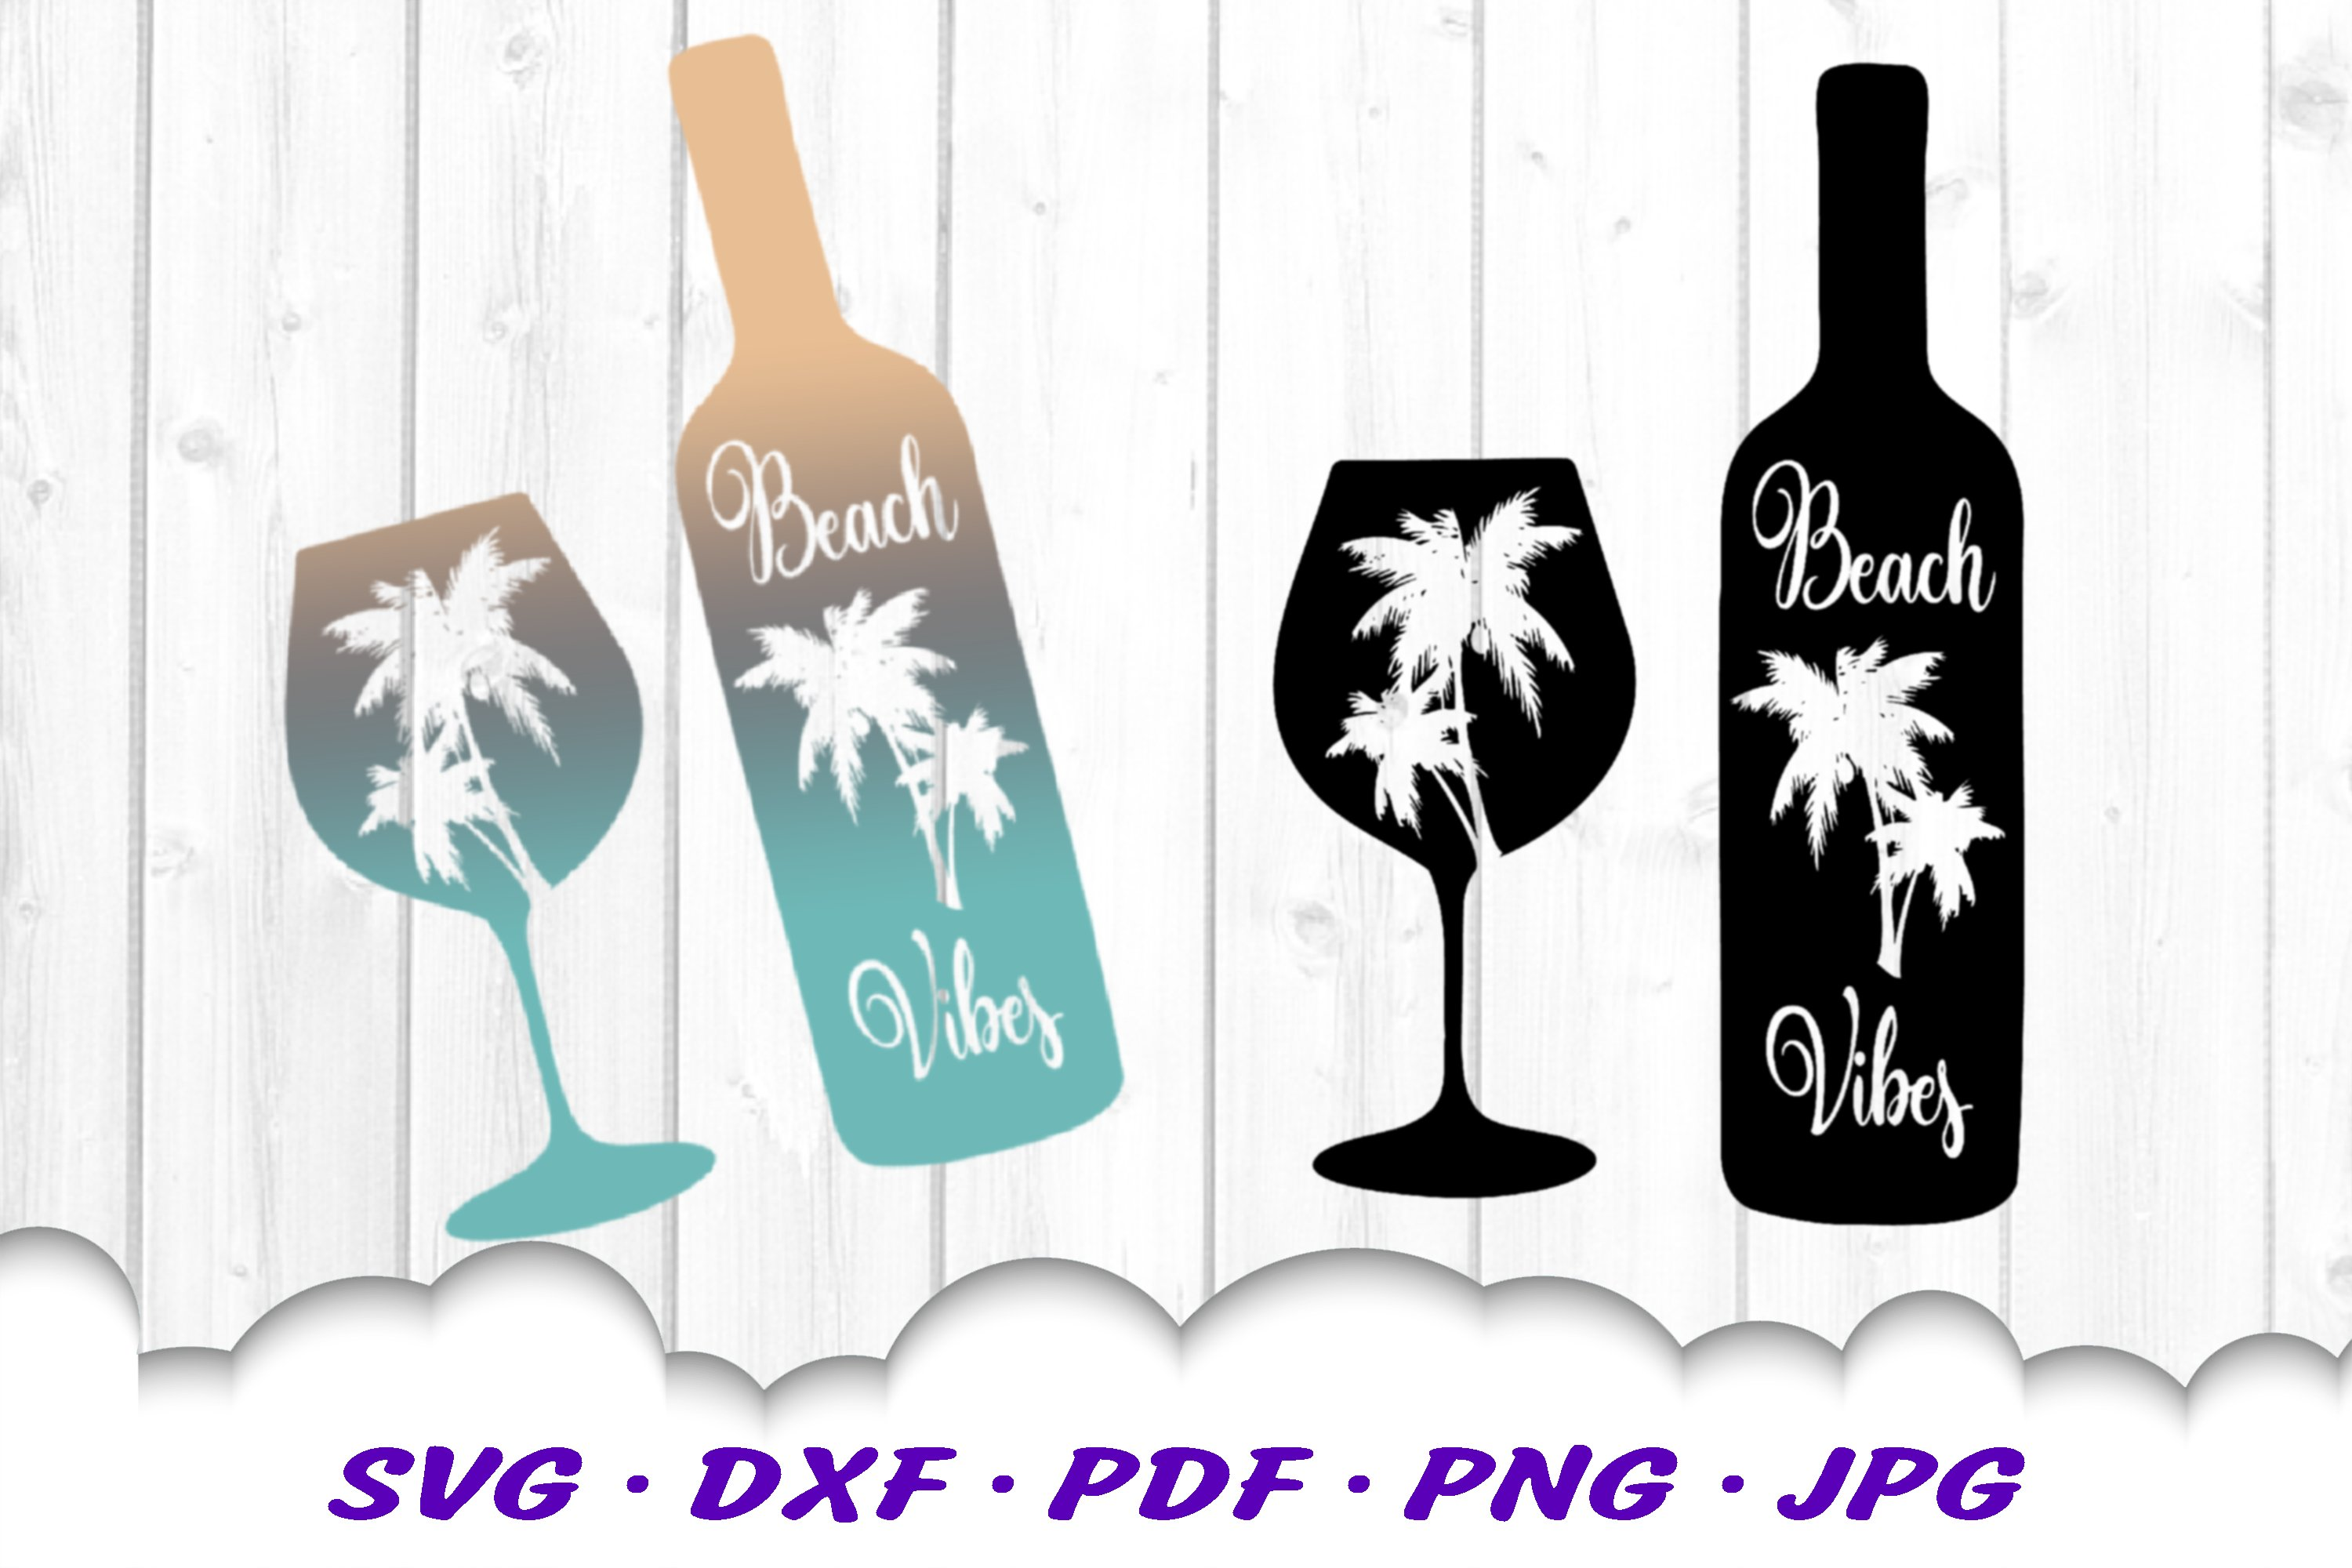 Beach Vibes Wine Bottle Glass SVG DXF Cut Files example image 2